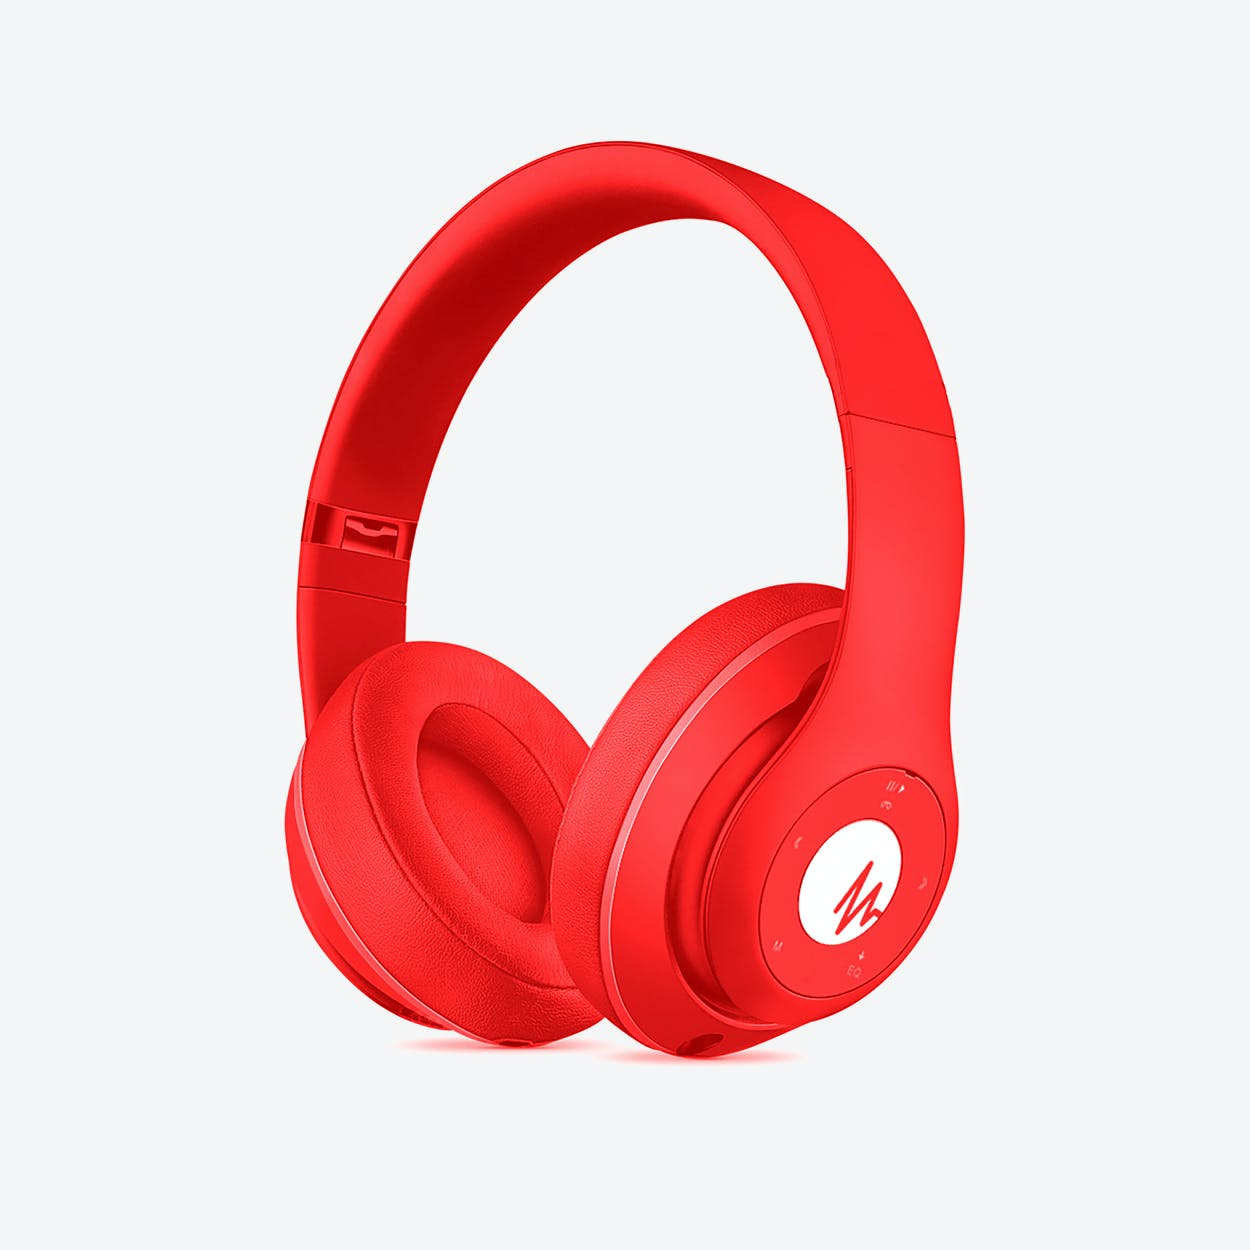 MAGNUSSEN H1 Headphones in Matte Red